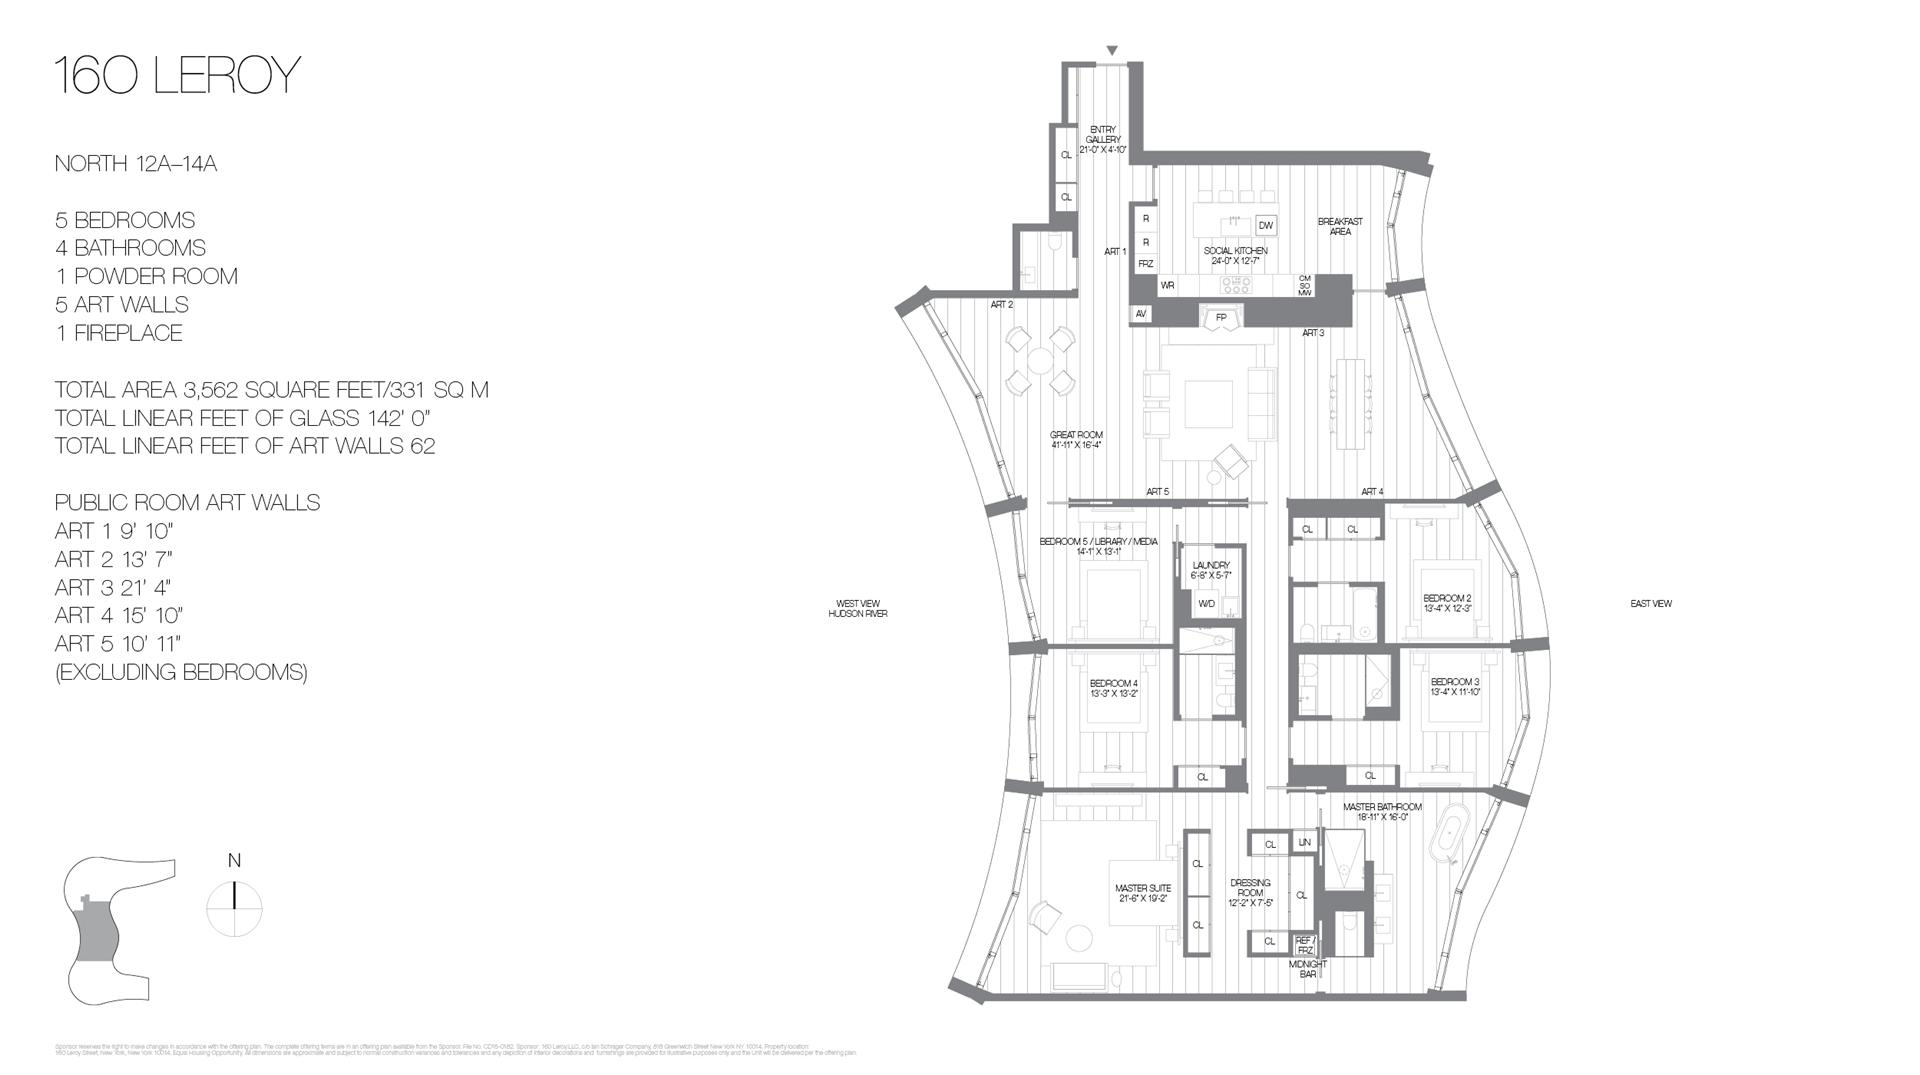 Floor plan of 160 Leroy St, NORTH12A - West Village - Meatpacking District, New York